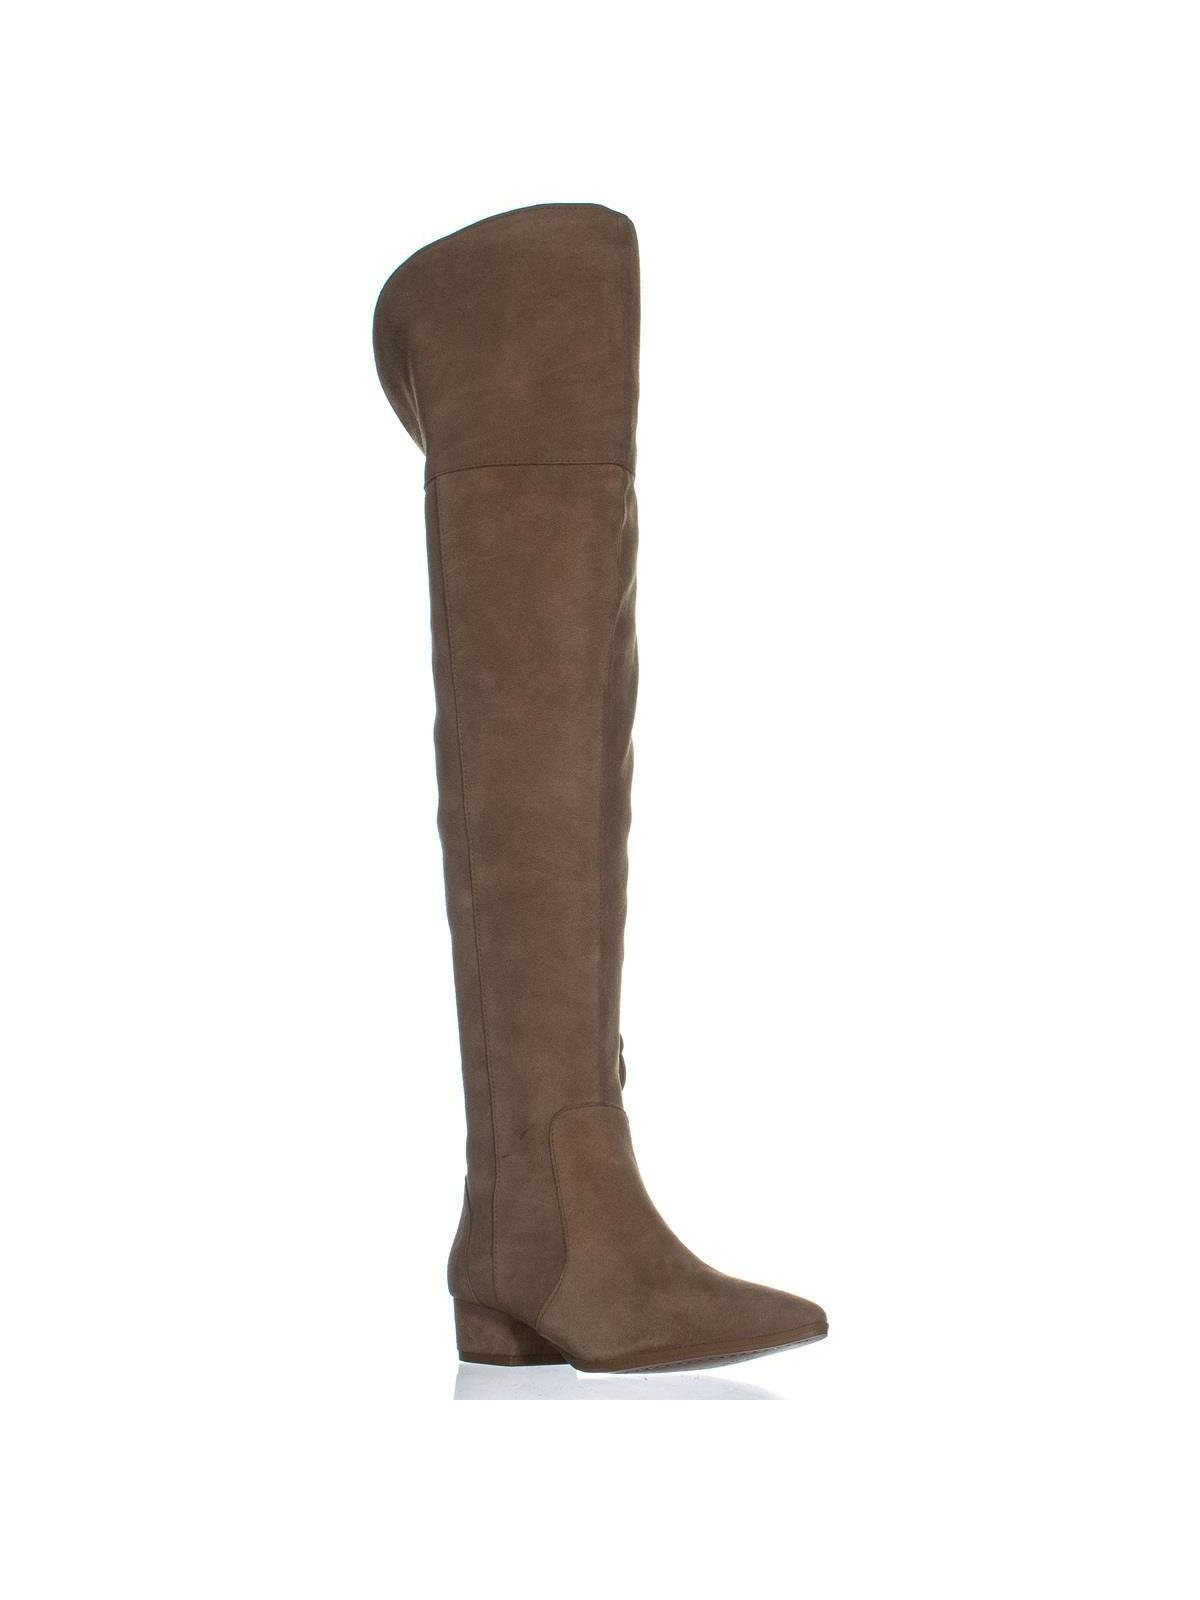 69a462779ab Splendid Ruby Over The Knee Zip Up Boots